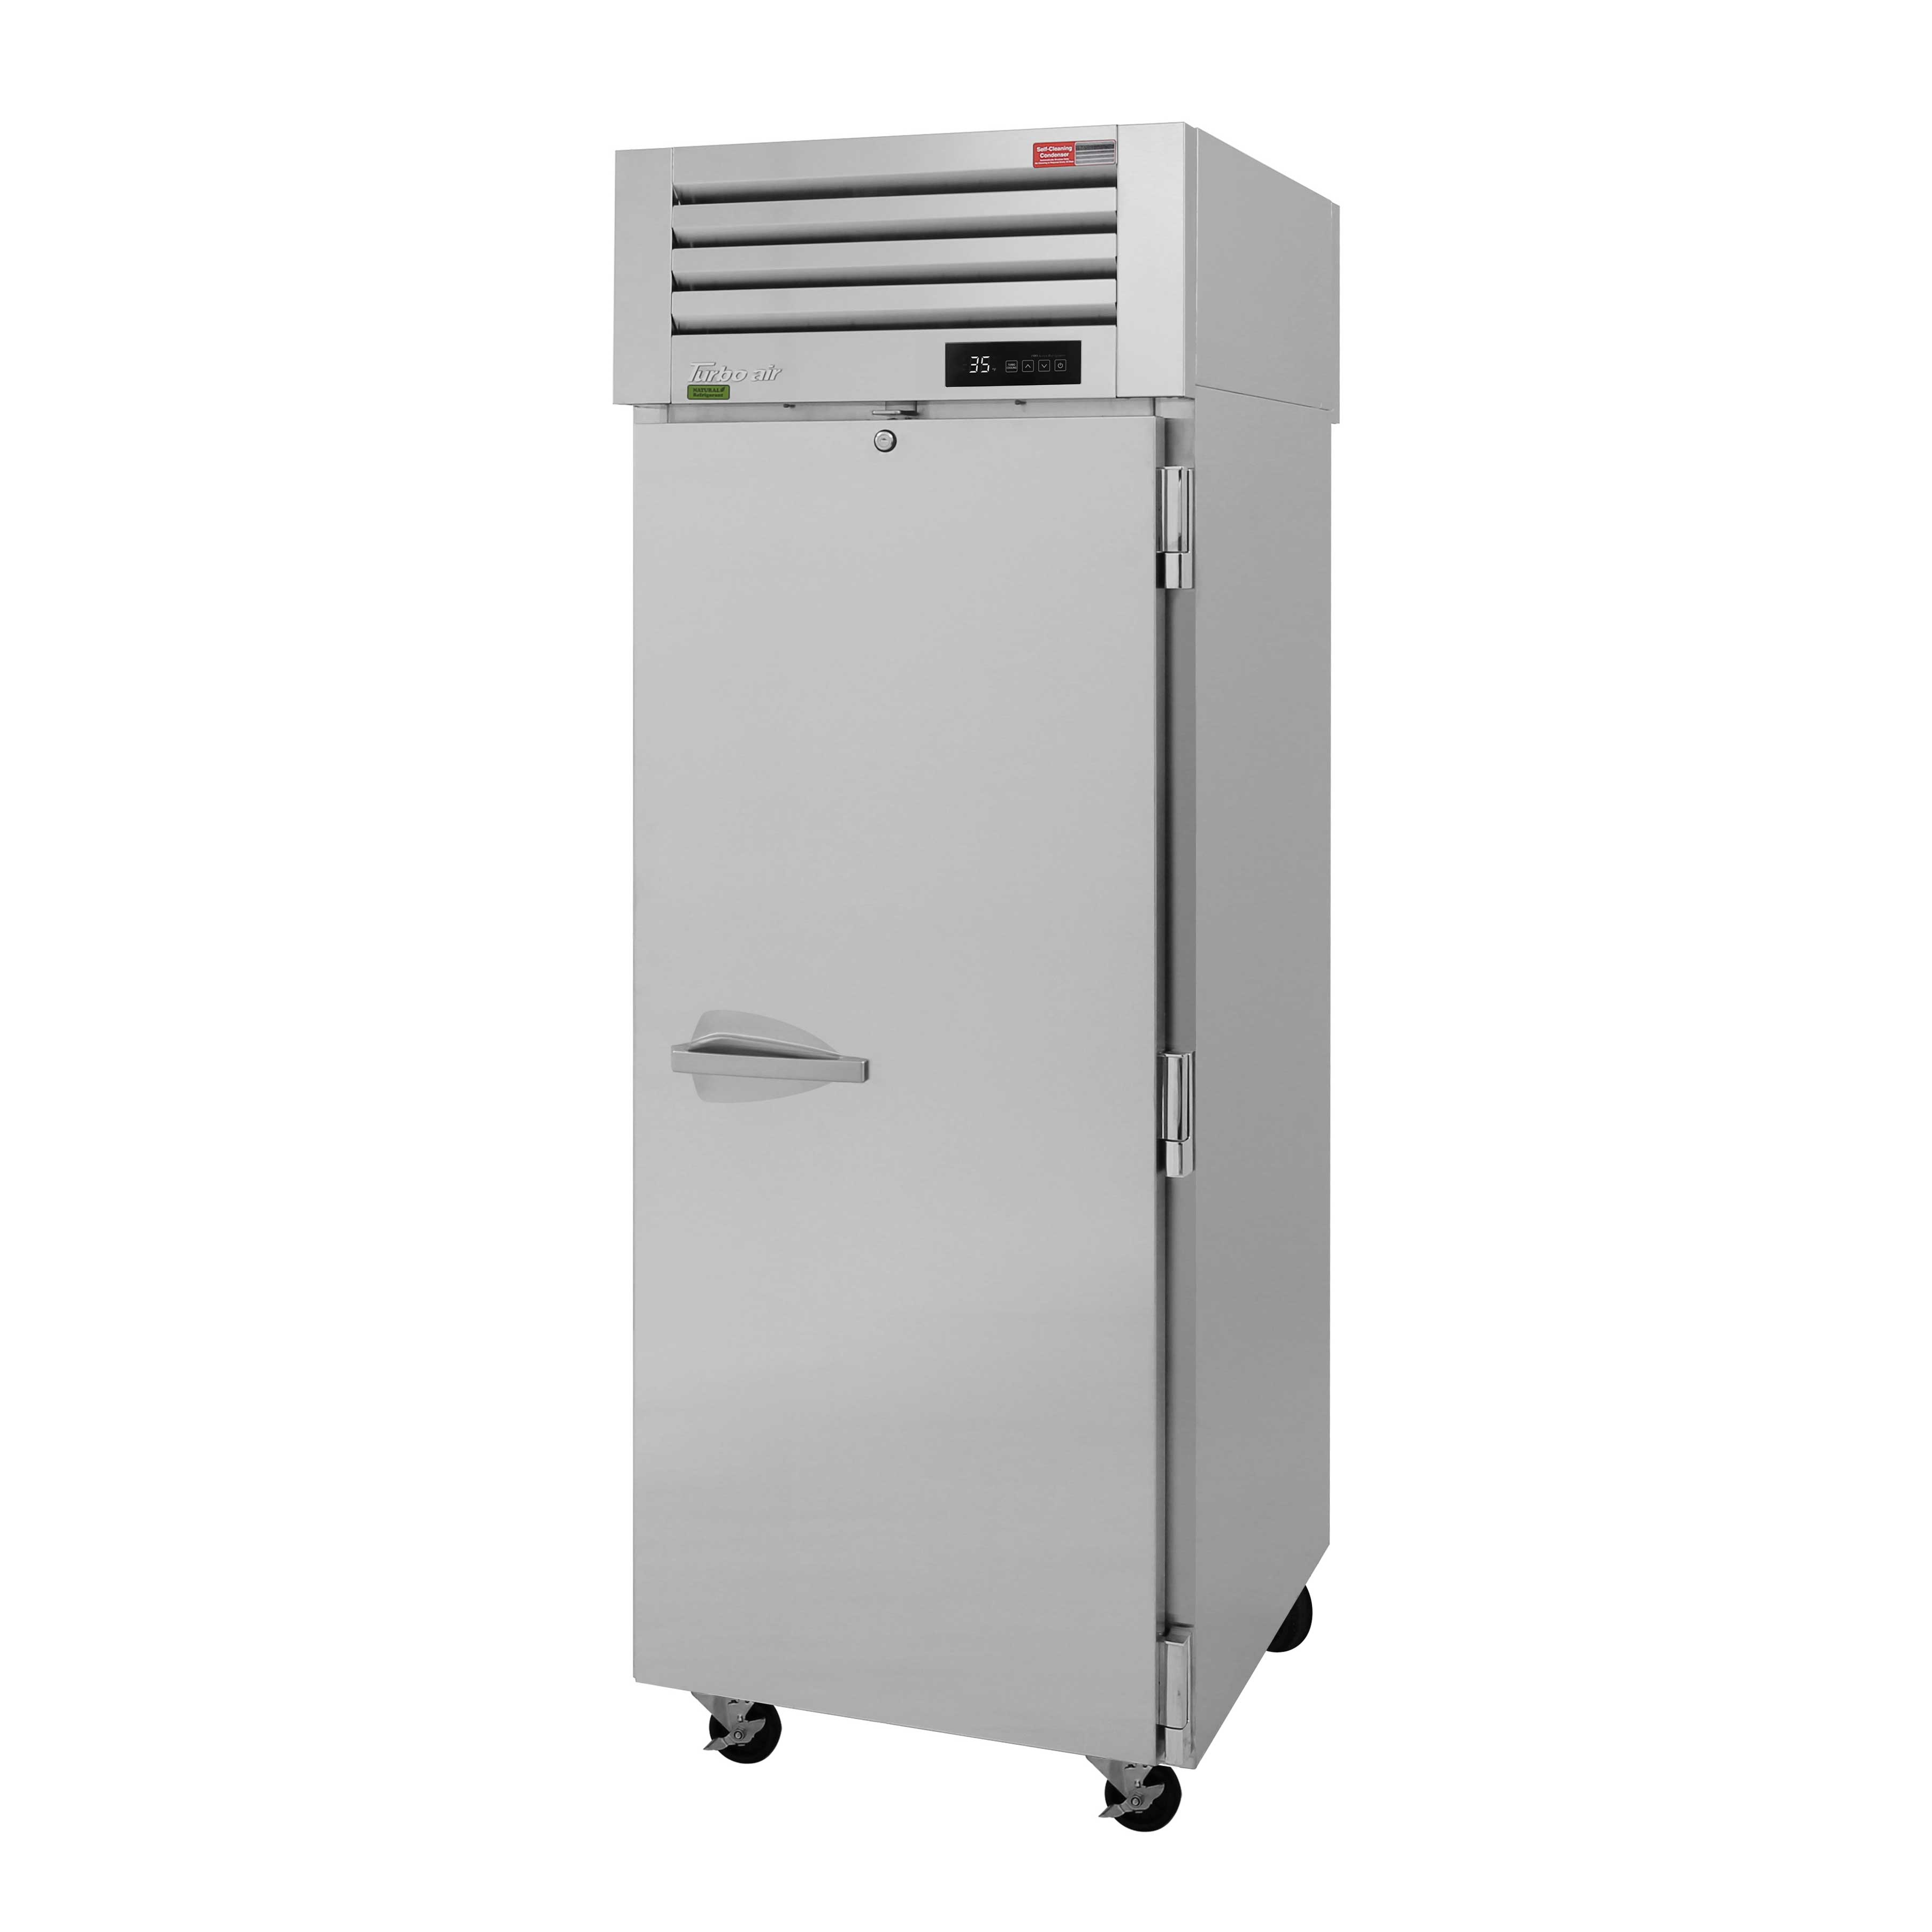 Turbo Air PRO-26R-PT-N refrigerator, pass-thru